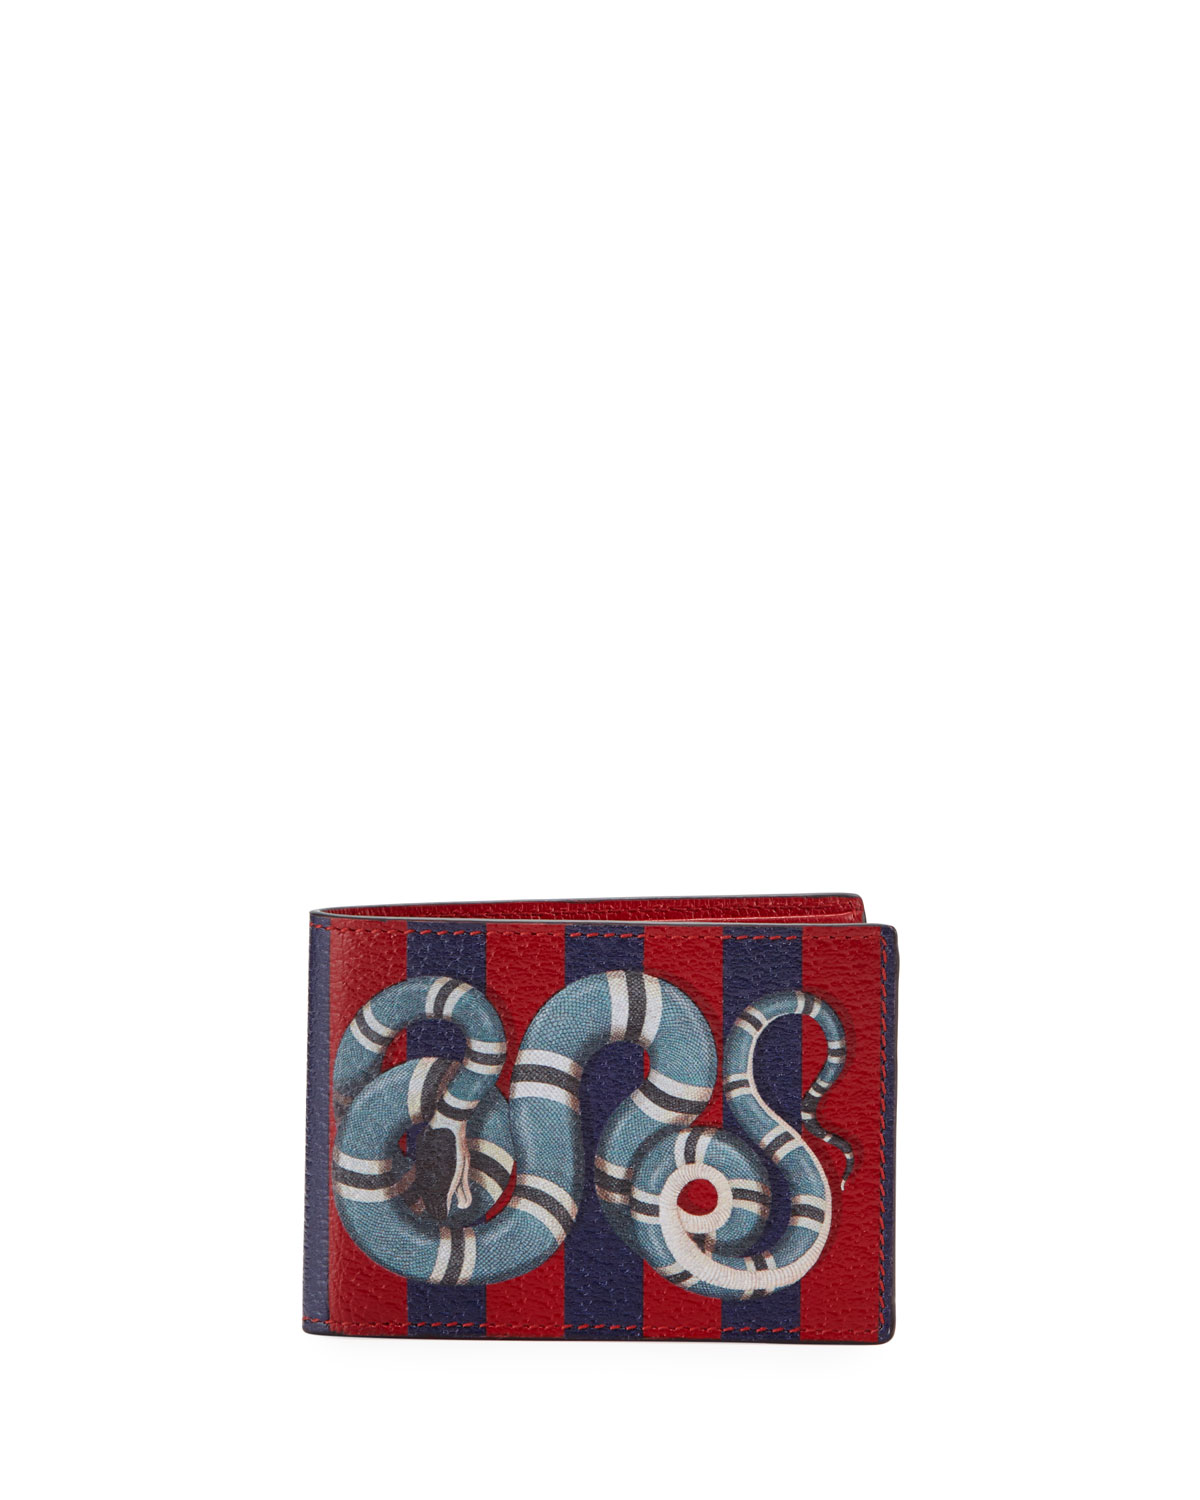 ad820a89b2edd9 Gucci Snake-Print Striped Leather Wallet | Neiman Marcus